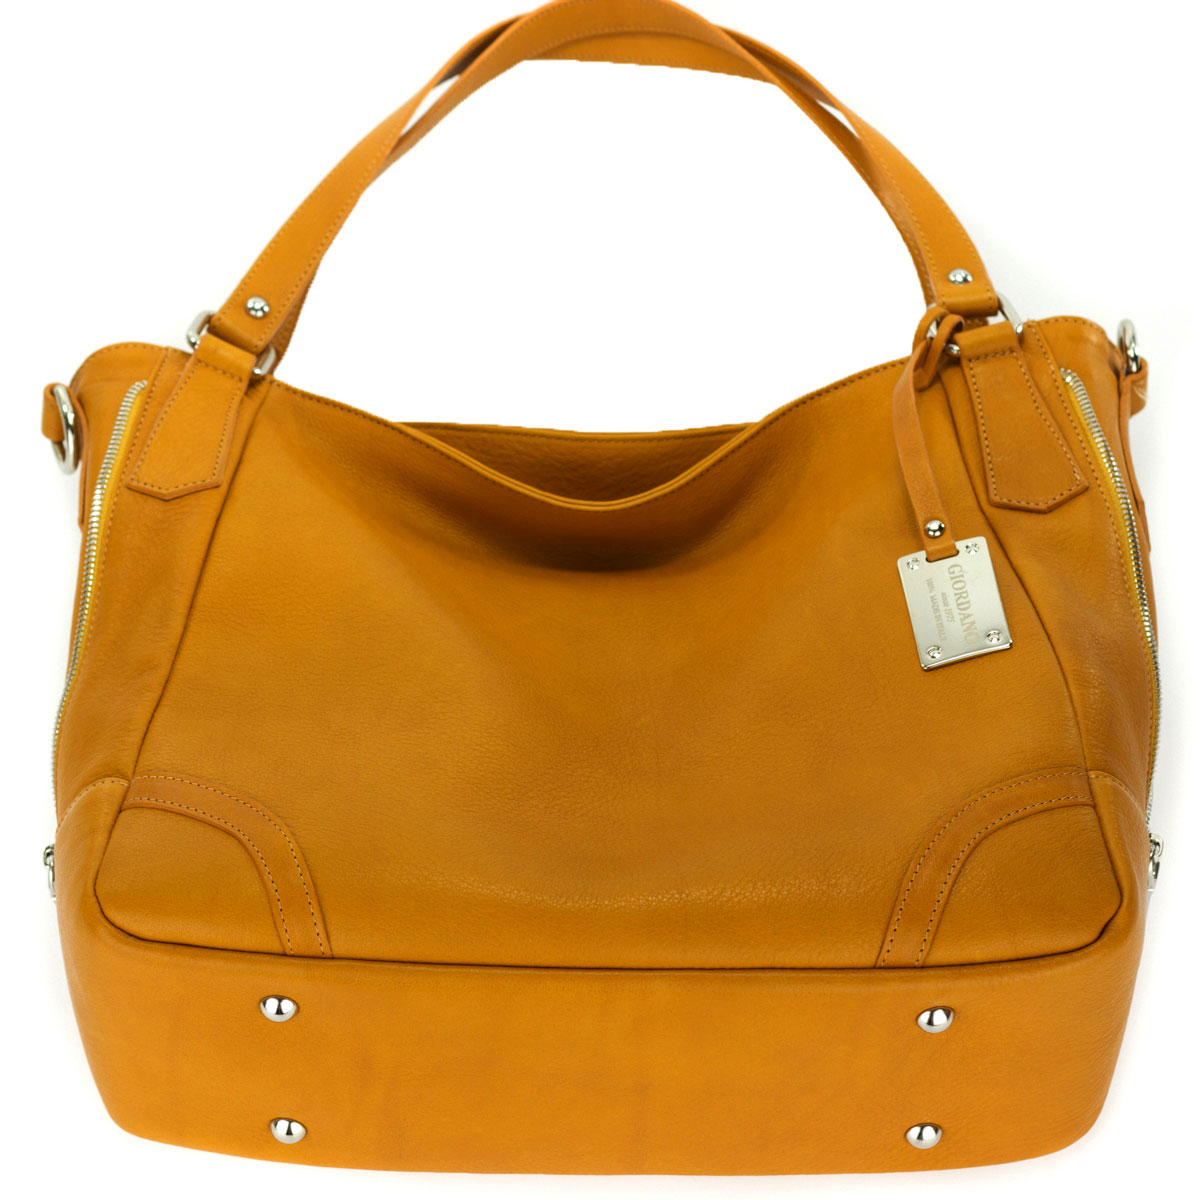 Shop large tan leather bag from Brahmin, Dooney & Bourke, Gucci and from Brahmin, Dooney & Bourke, Mansur Gavriel and many more. Find thousands of new high fashion items in one place.